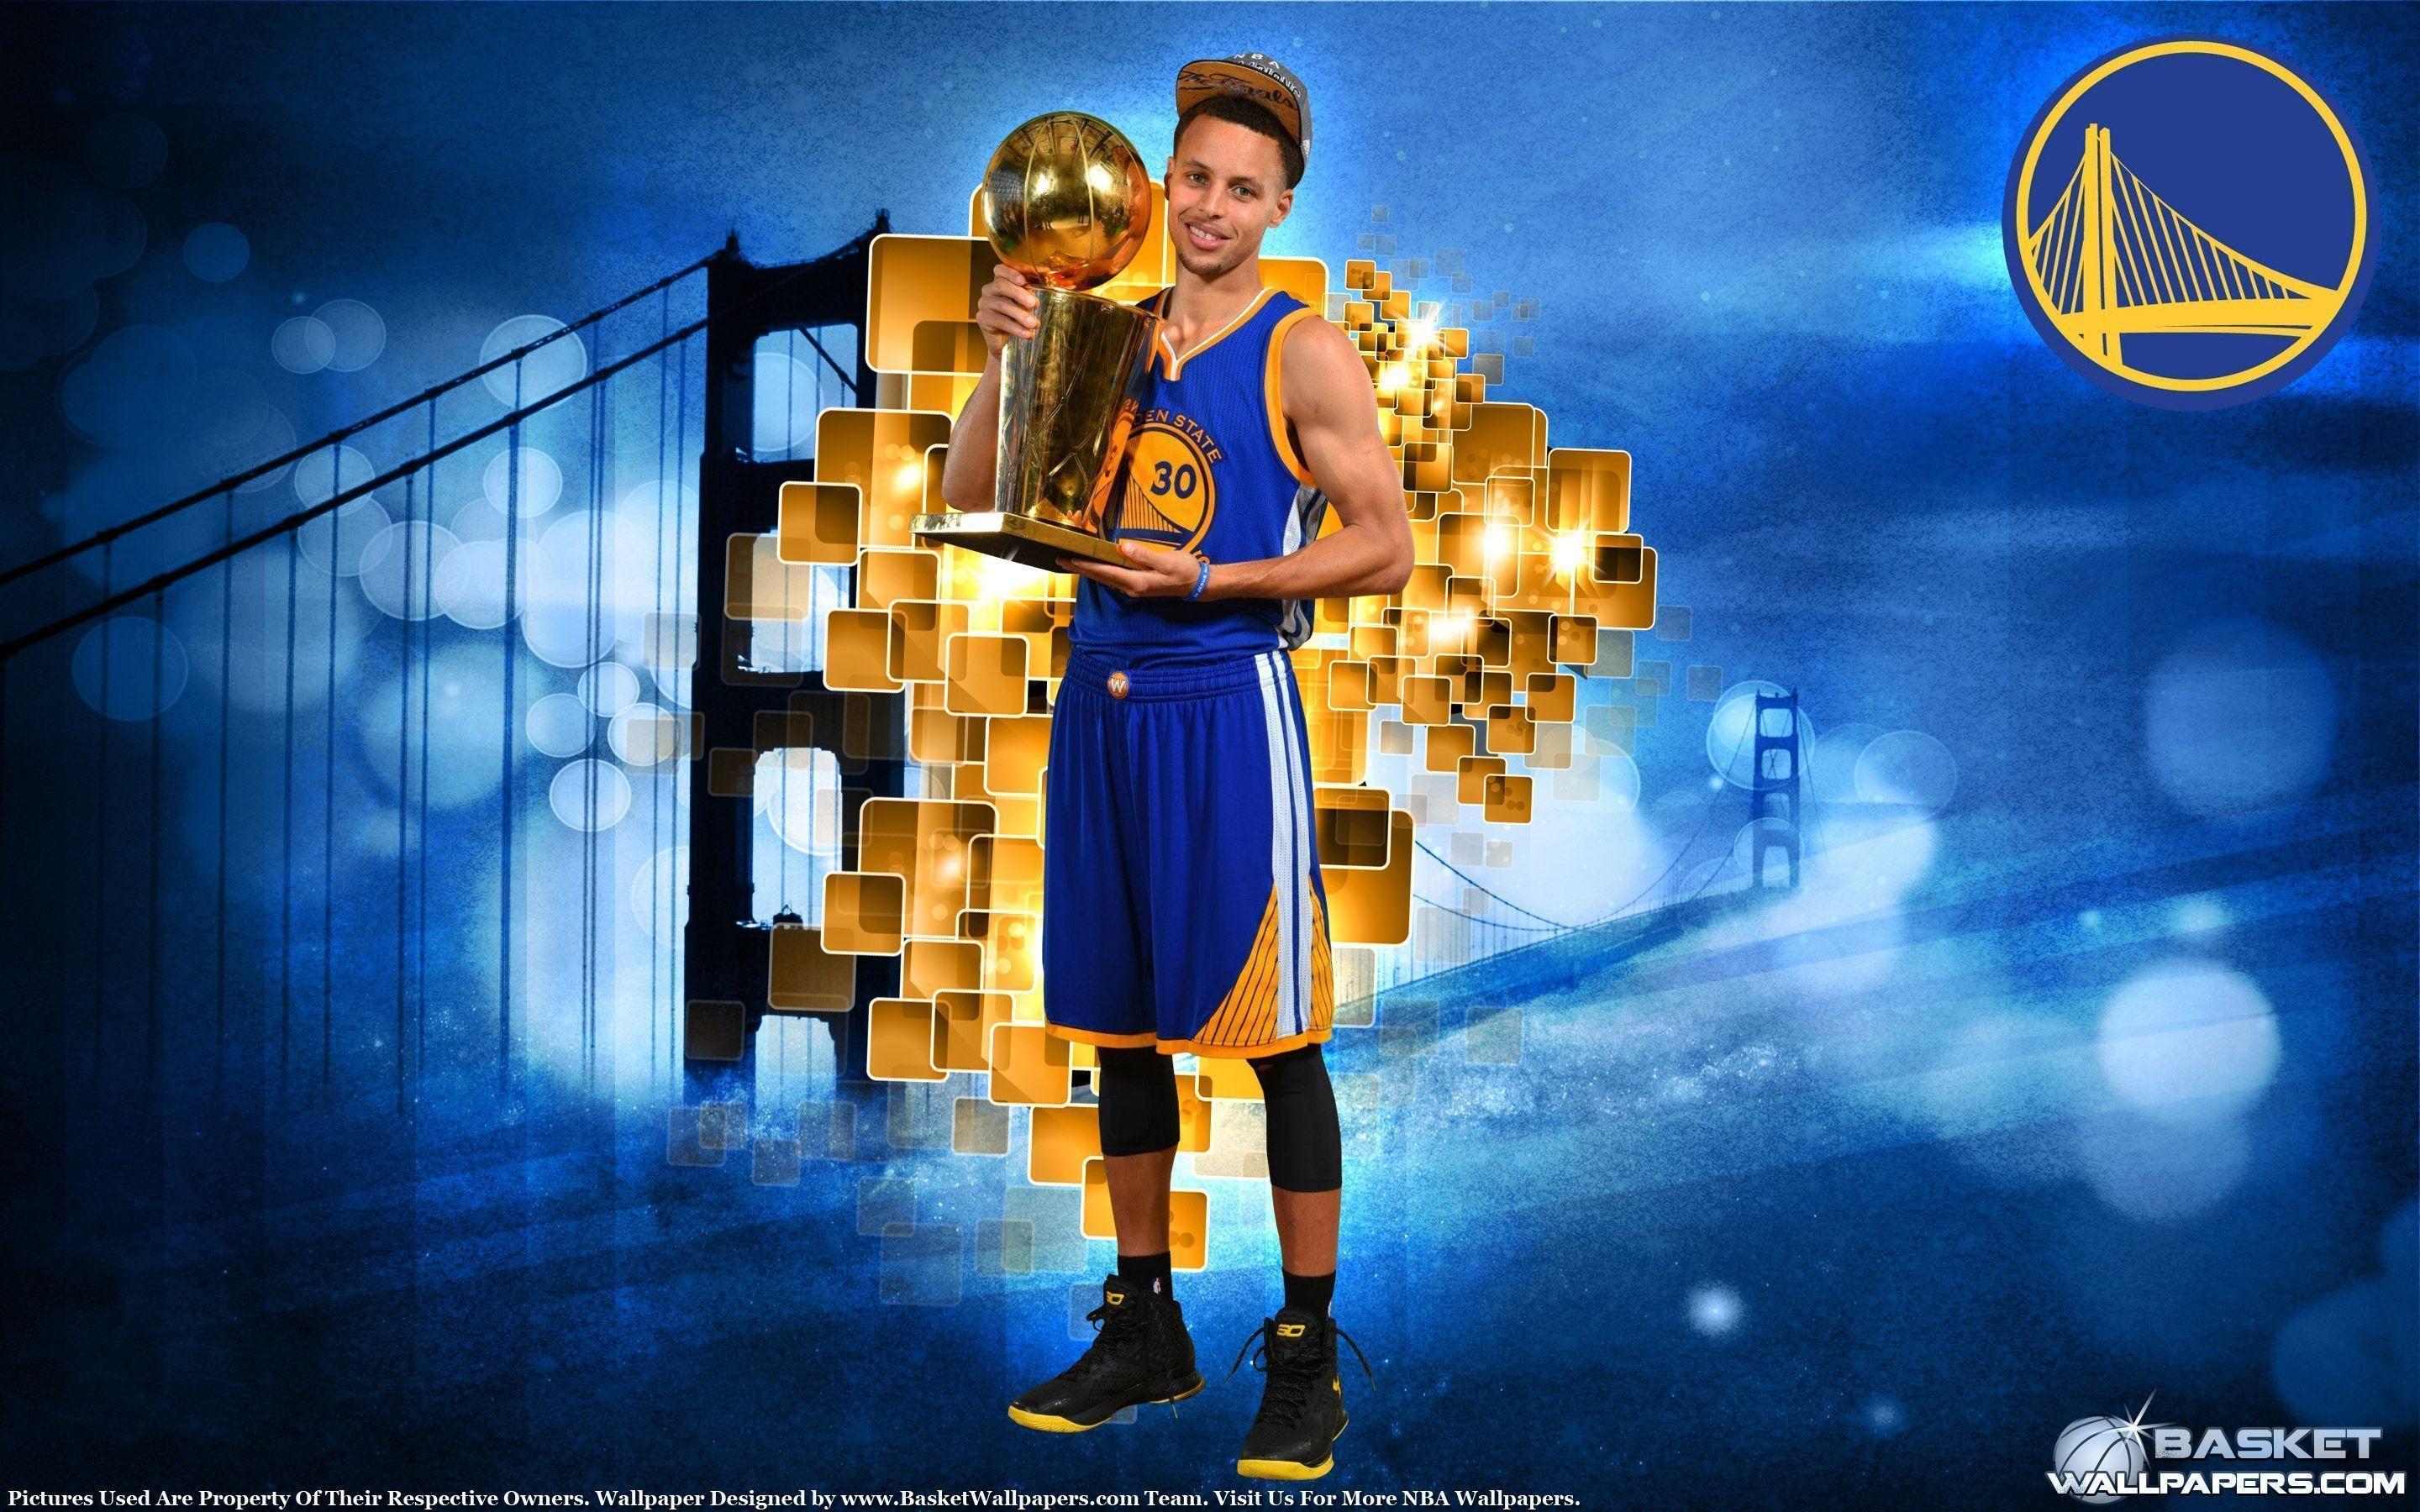 Stephen Curry Wallpapers